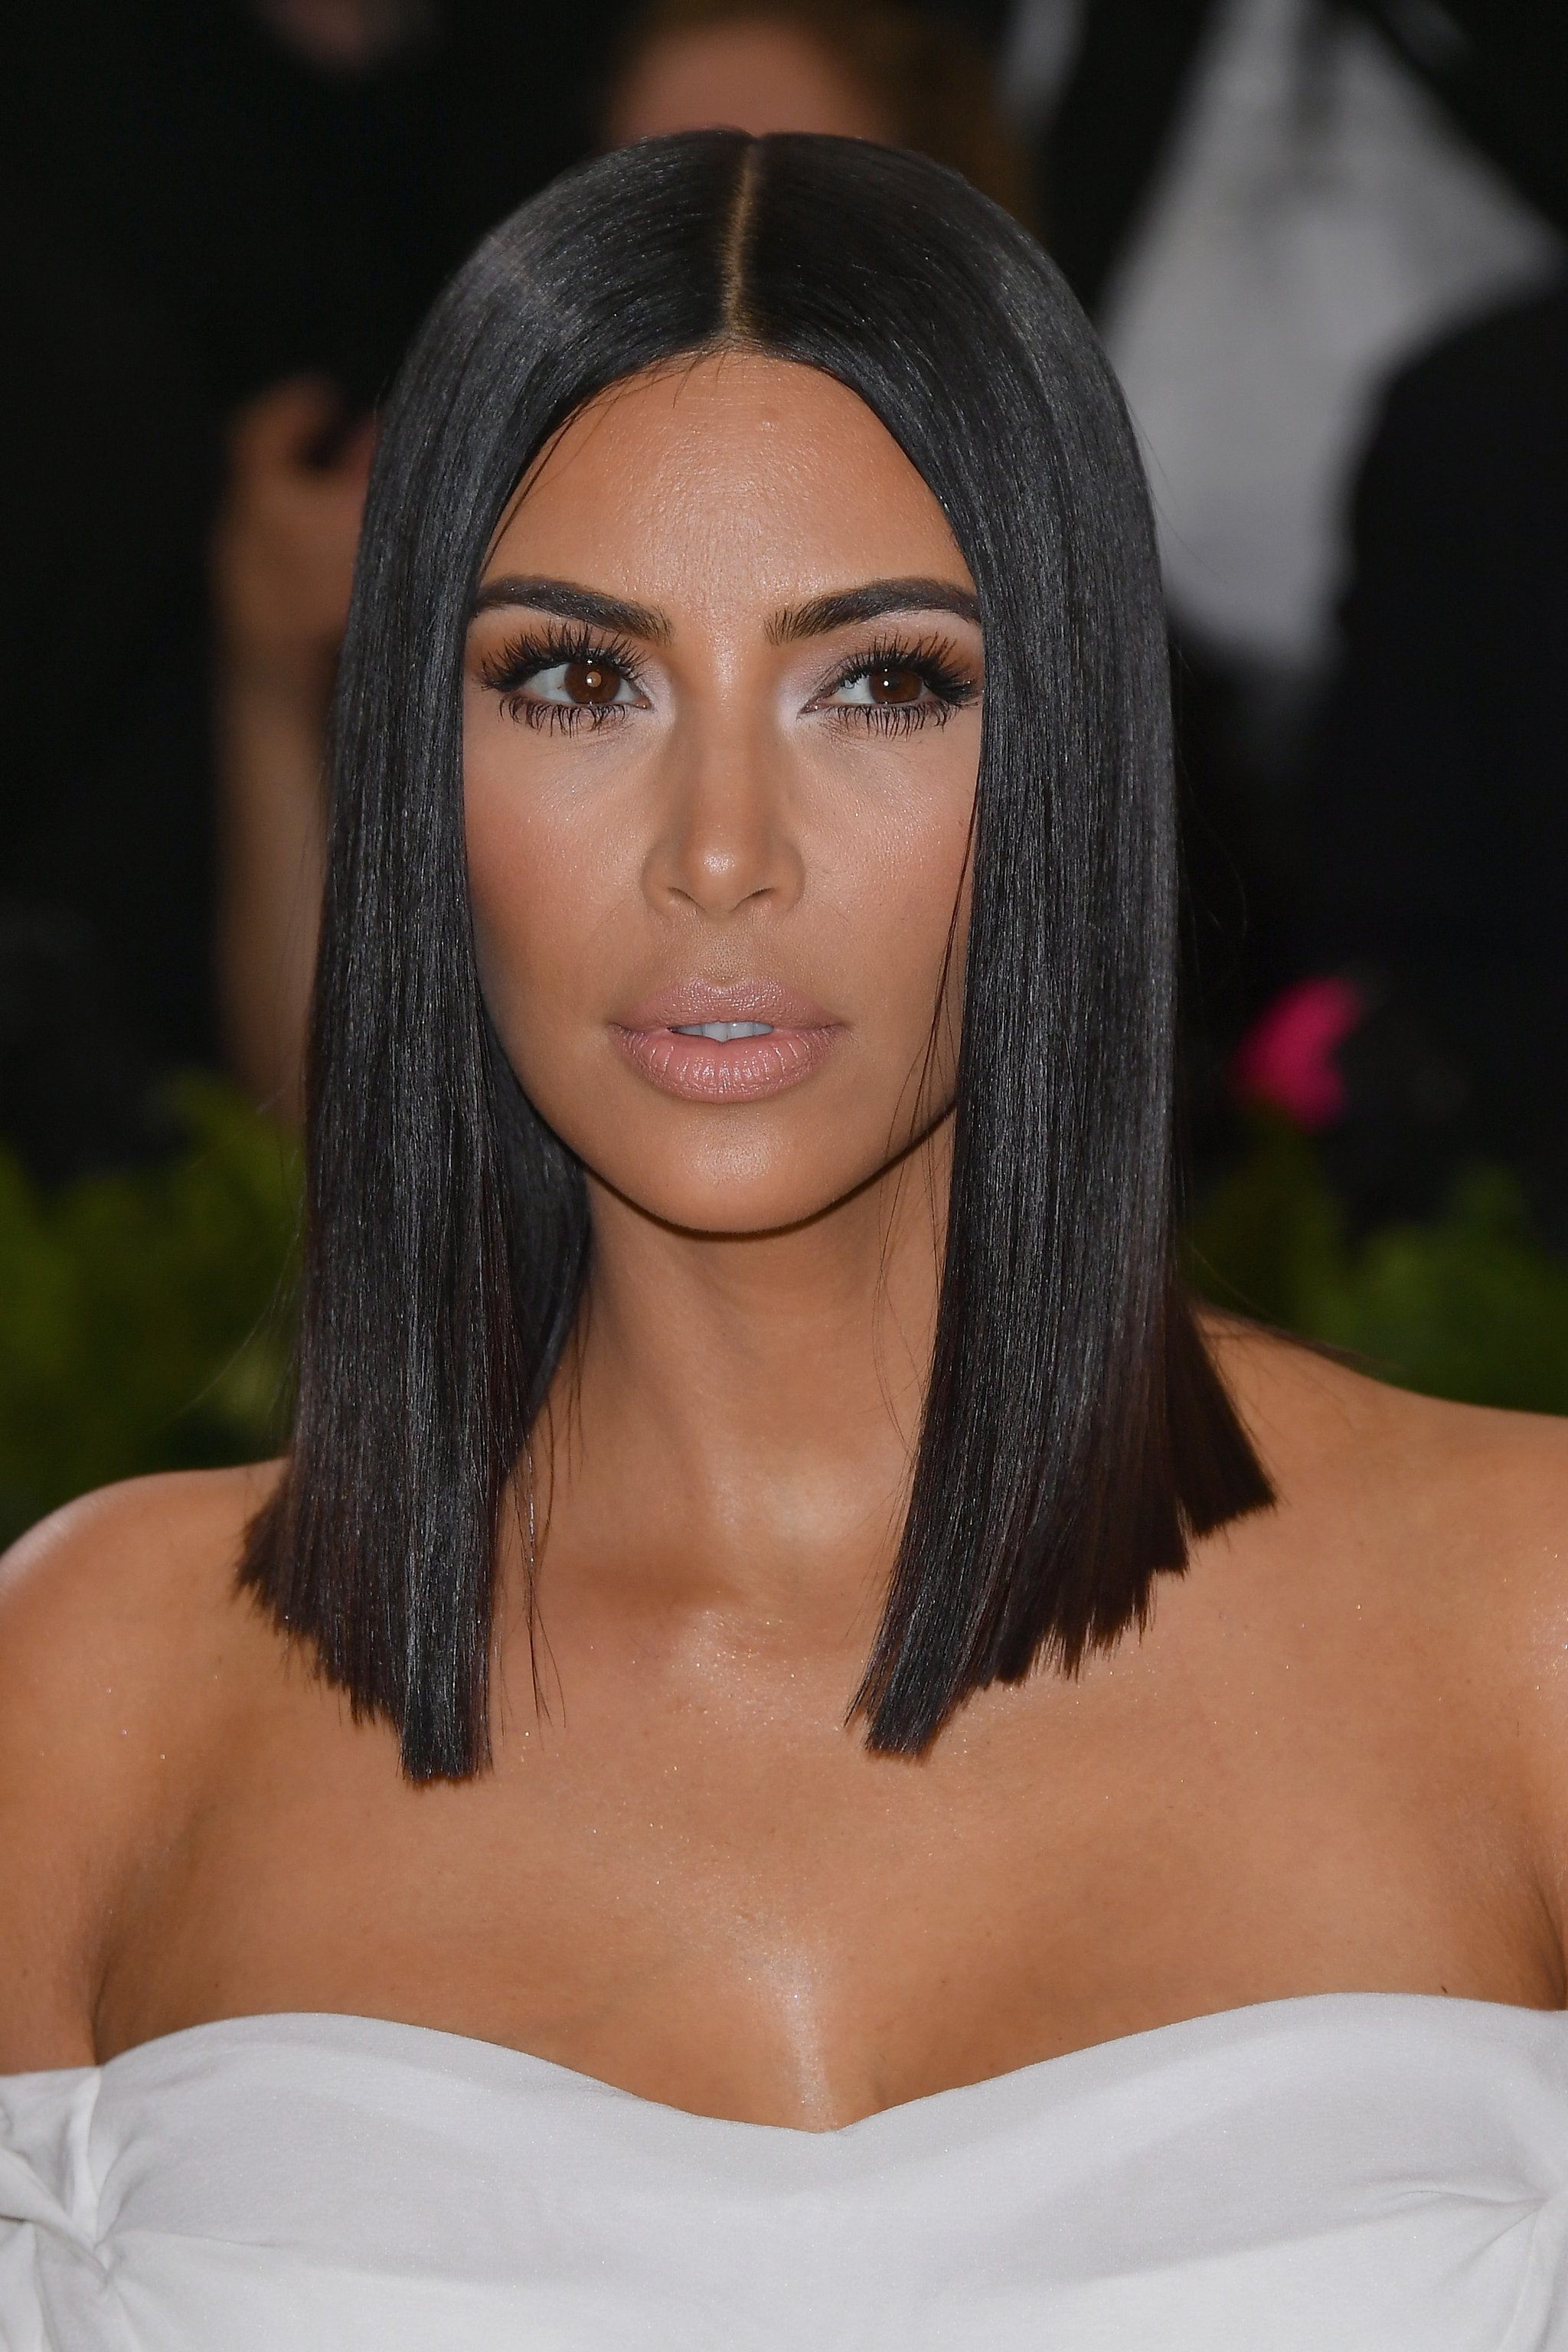 Kim Kardashian's long full lashed would make any girl envious of the look. You can achieve the voluminous lashes yourself, again with Ardell. Ardell's Demi 120 lashes offer the perfect amount of volume and length, perfect for a night out, or the Met!